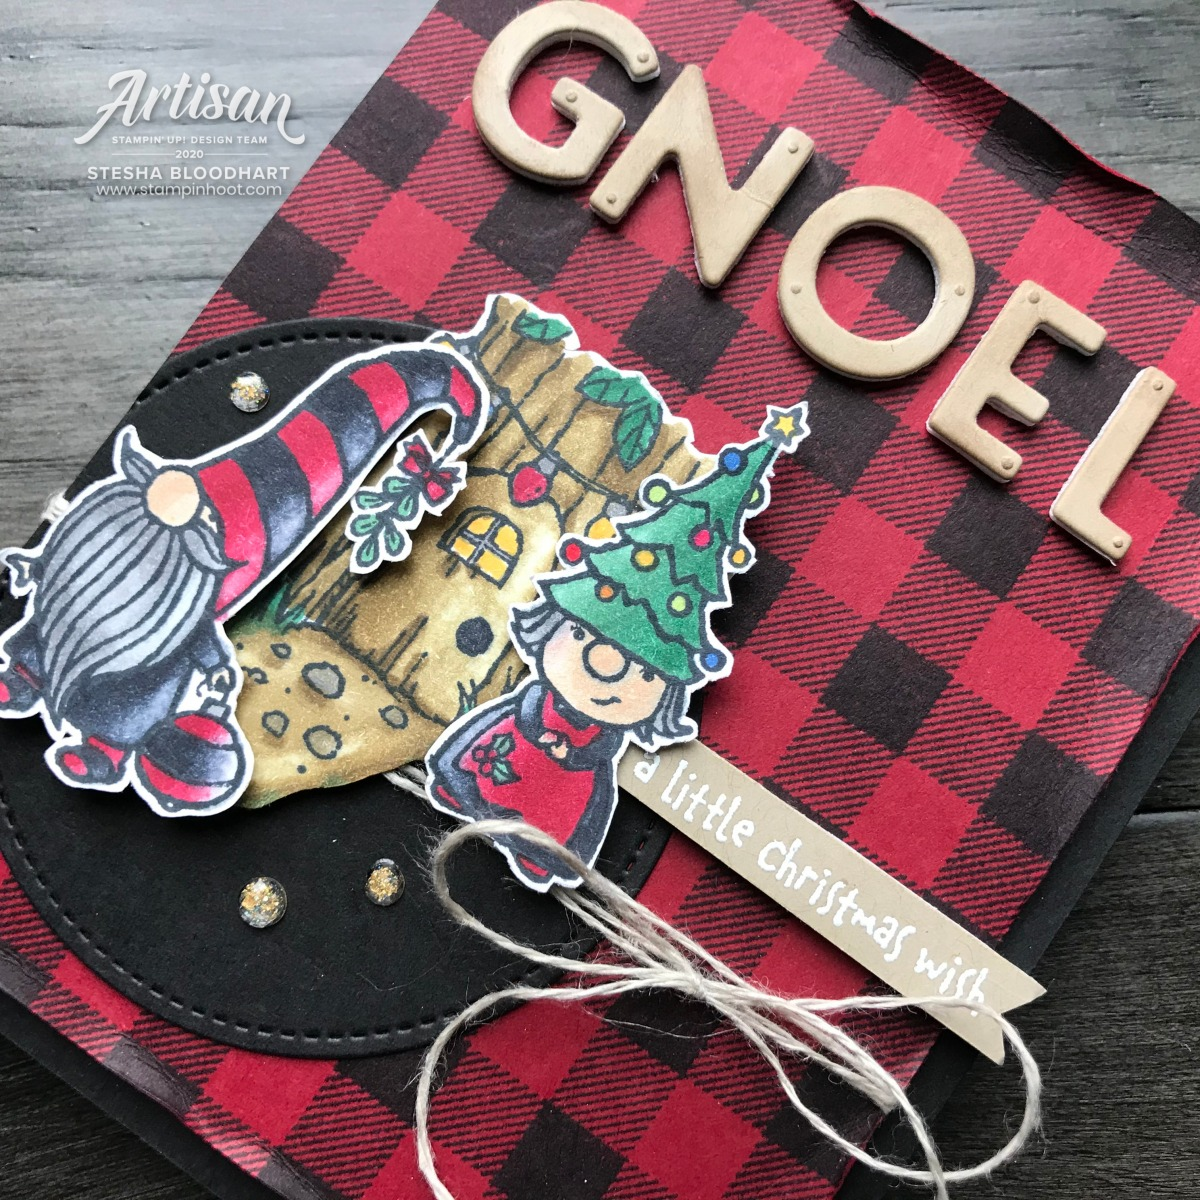 Holiday Card created by Stesha Bloodhart, Stampin' Hoot! Gnome for the Holiday's Stamp Set from Stampin' Up! (1)